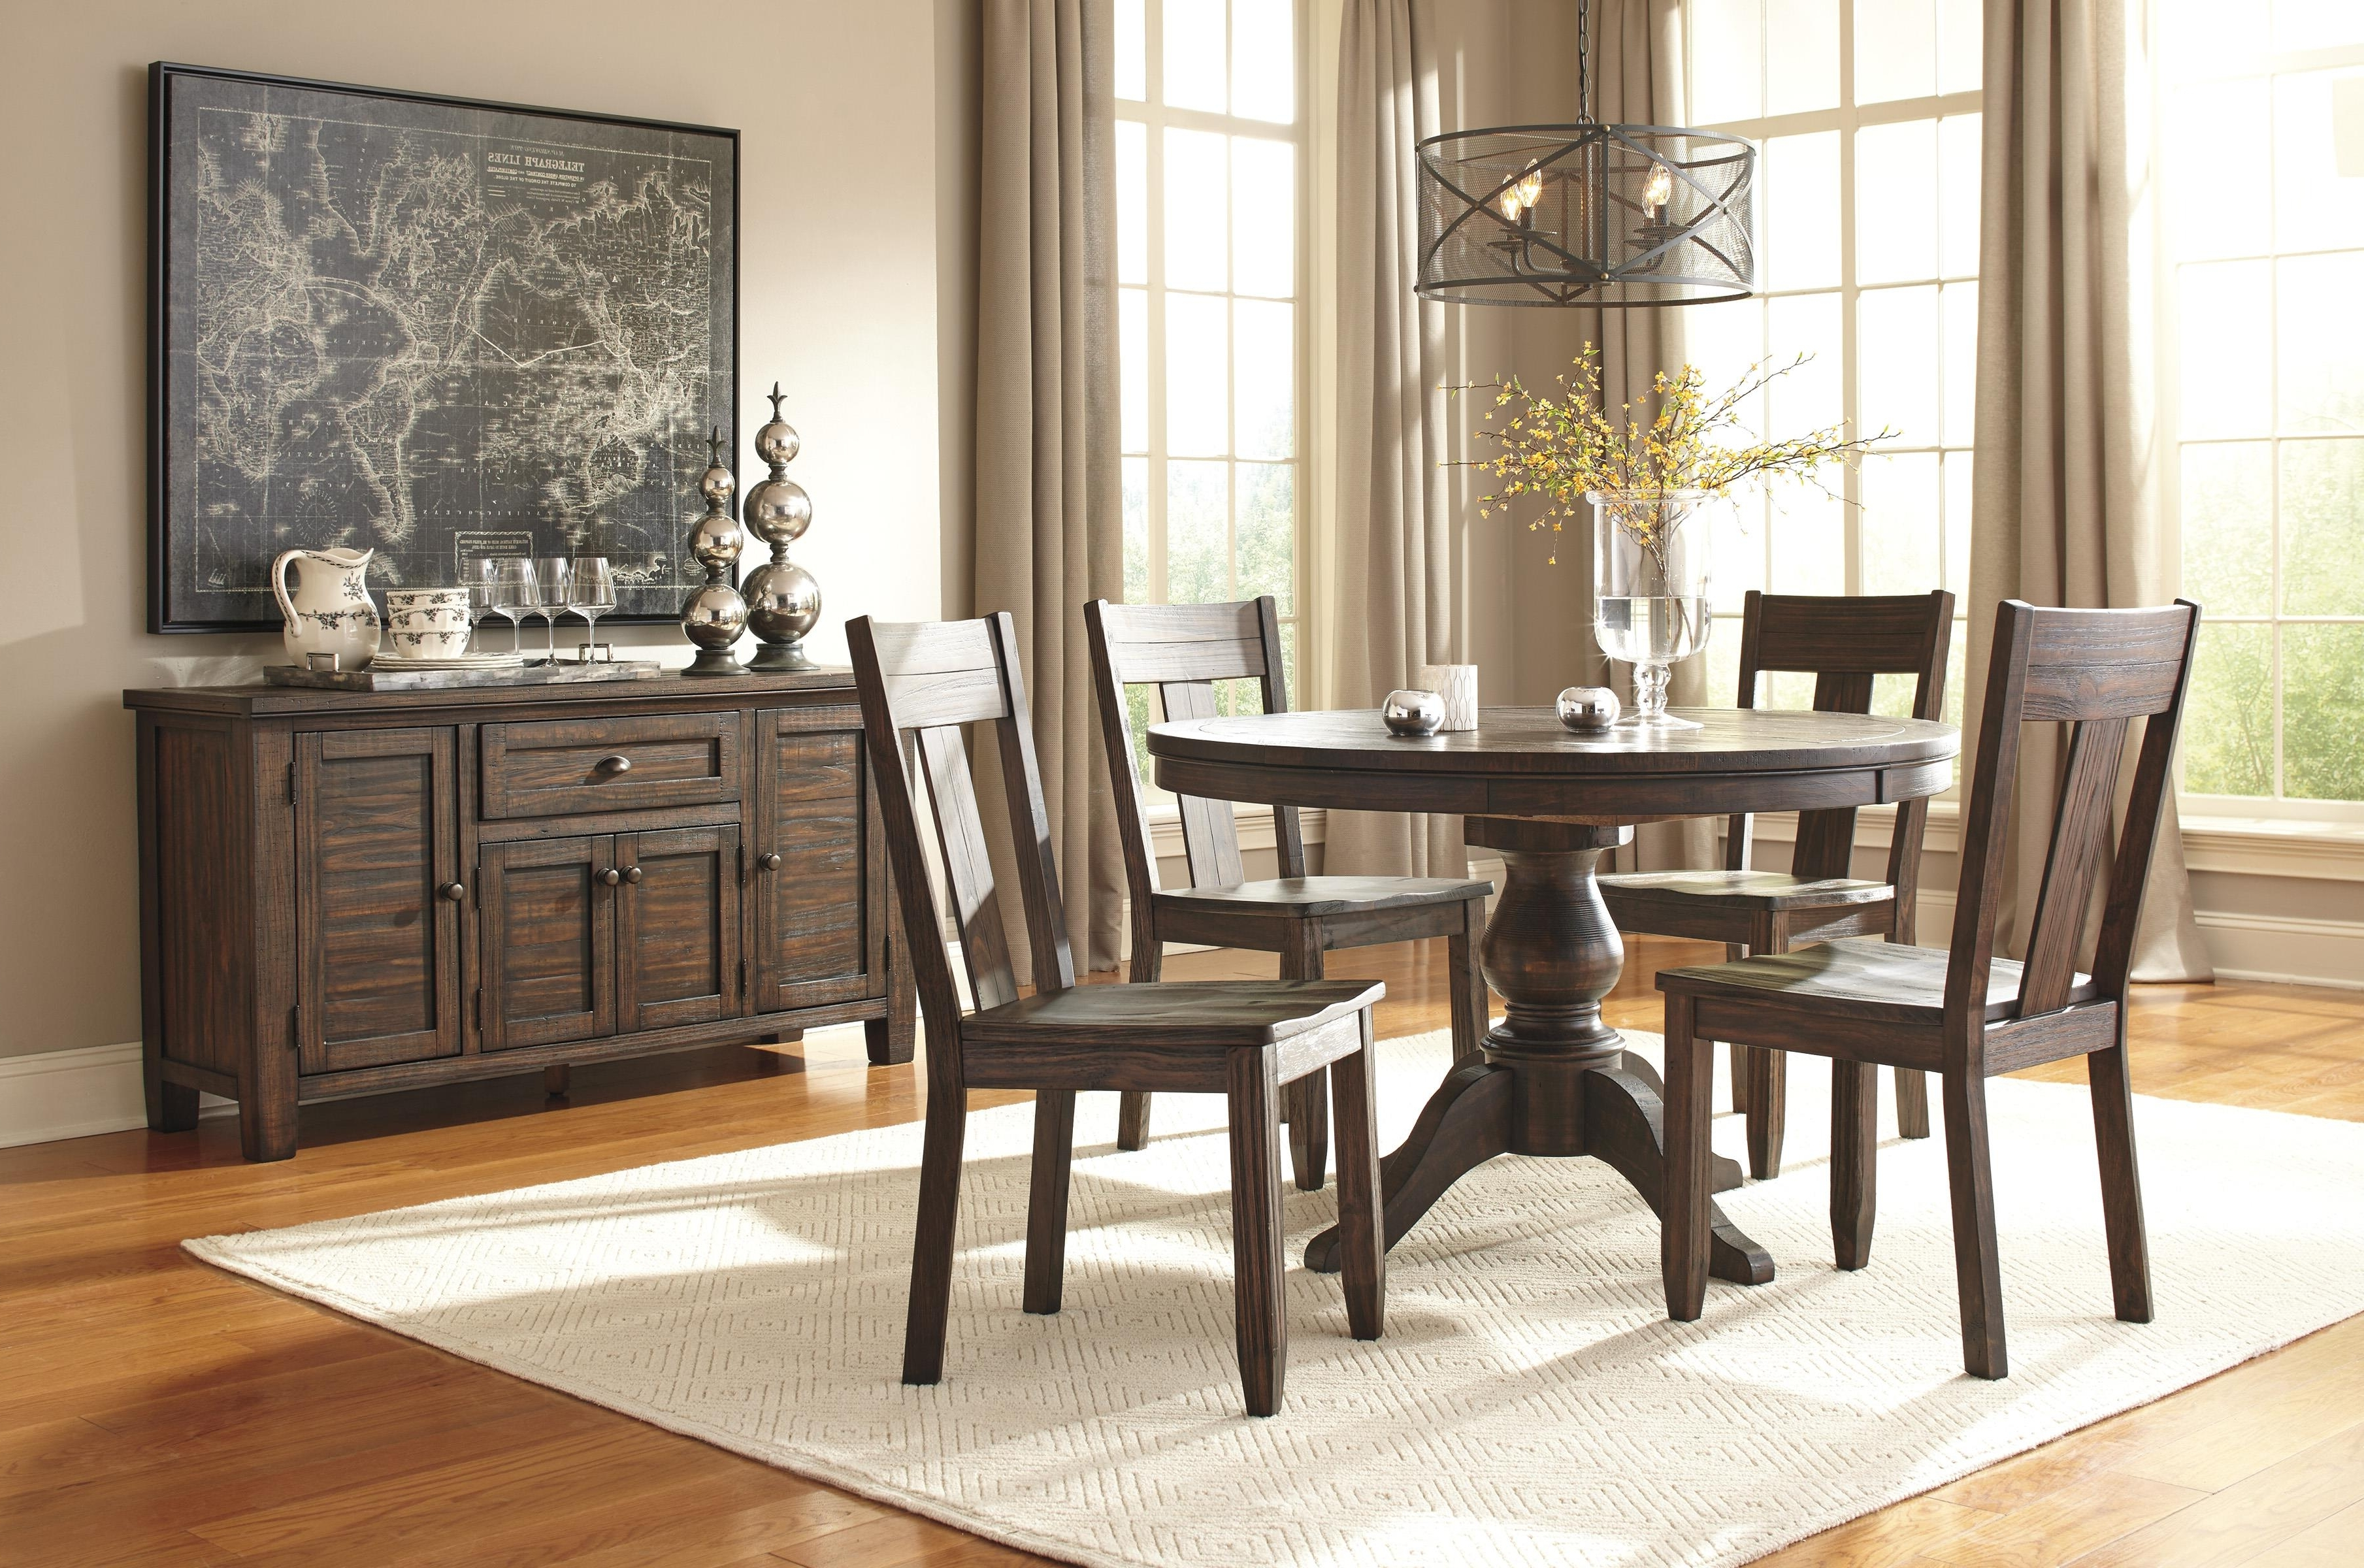 Jaxon 5 Piece Extension Round Dining Sets With Wood Chairs intended for Most Up-to-Date Signature Designashley Trudell Round Dining Room Pedestal